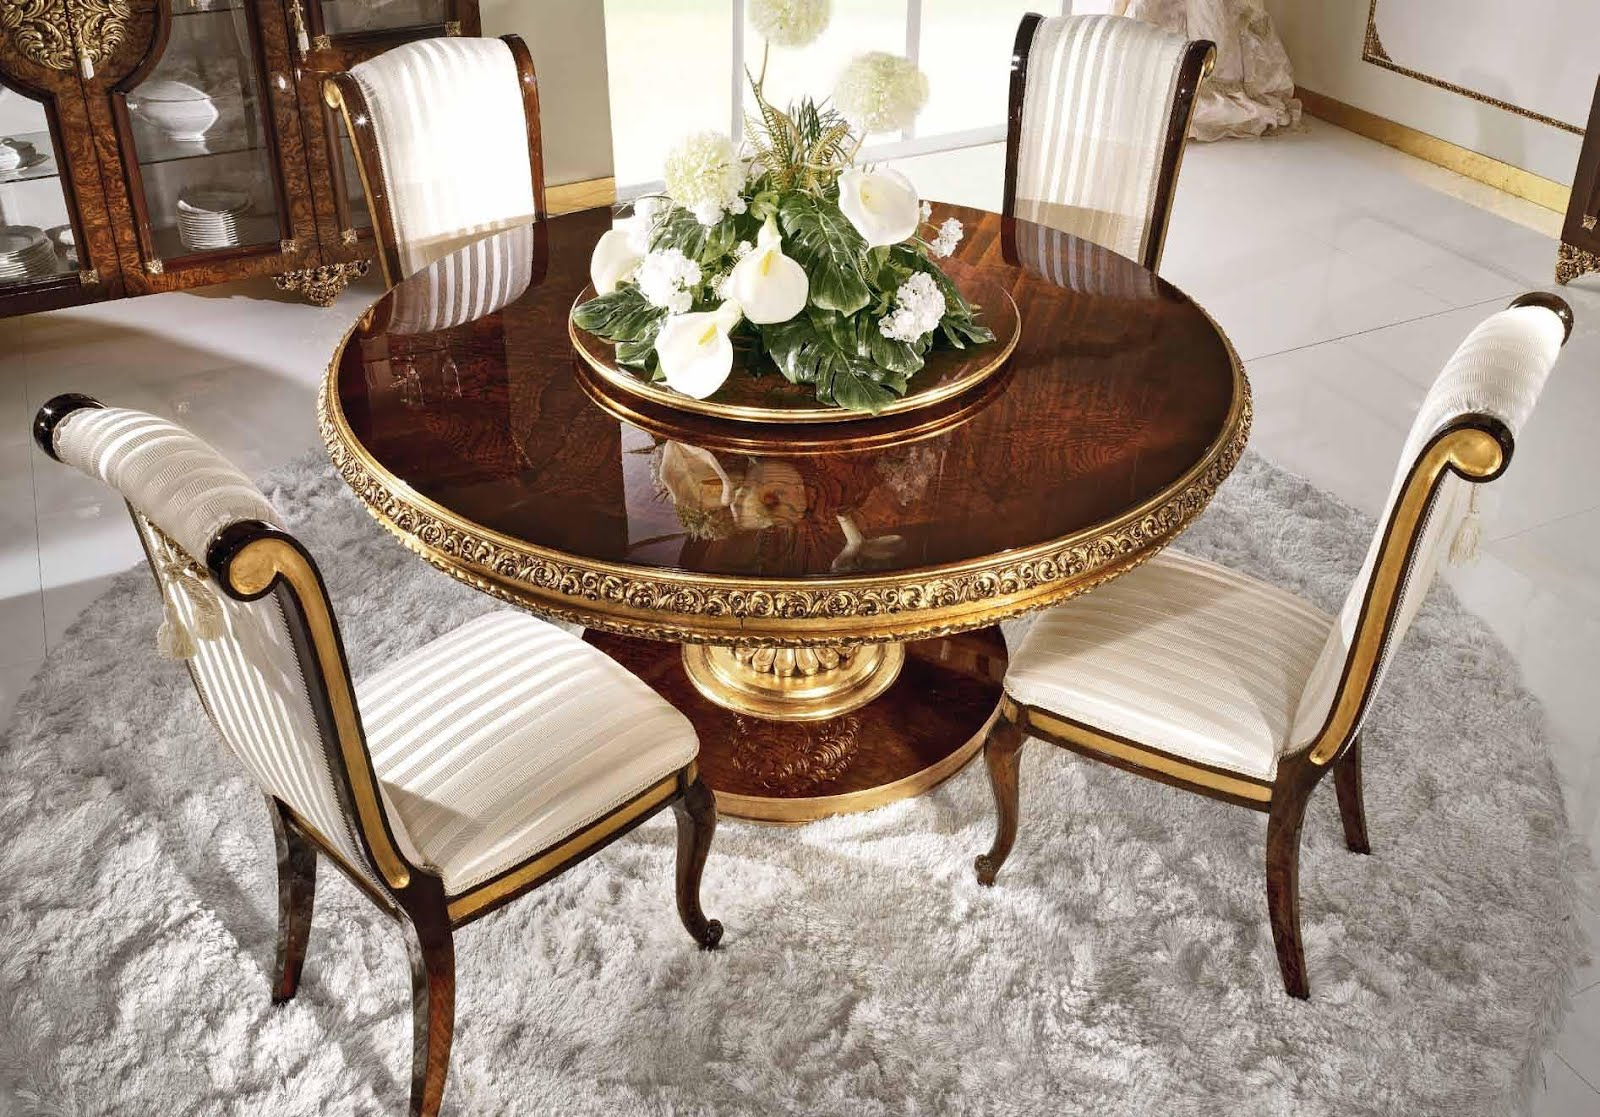 Antique French Furniture Royal Round Dining Table in Classic Style